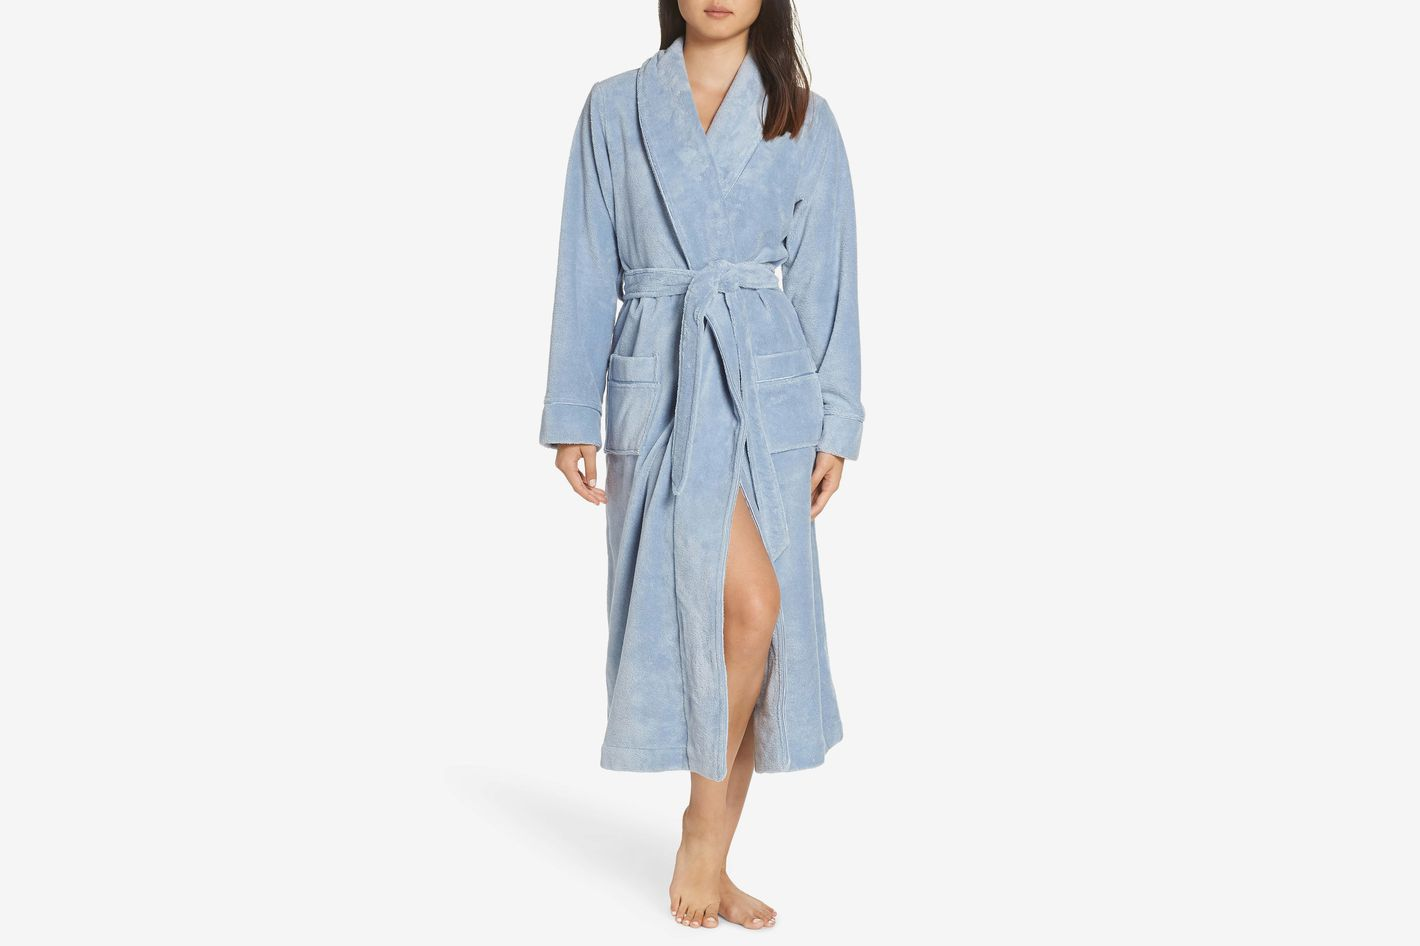 7526312694 15 Best Bathrobes for Women 2018